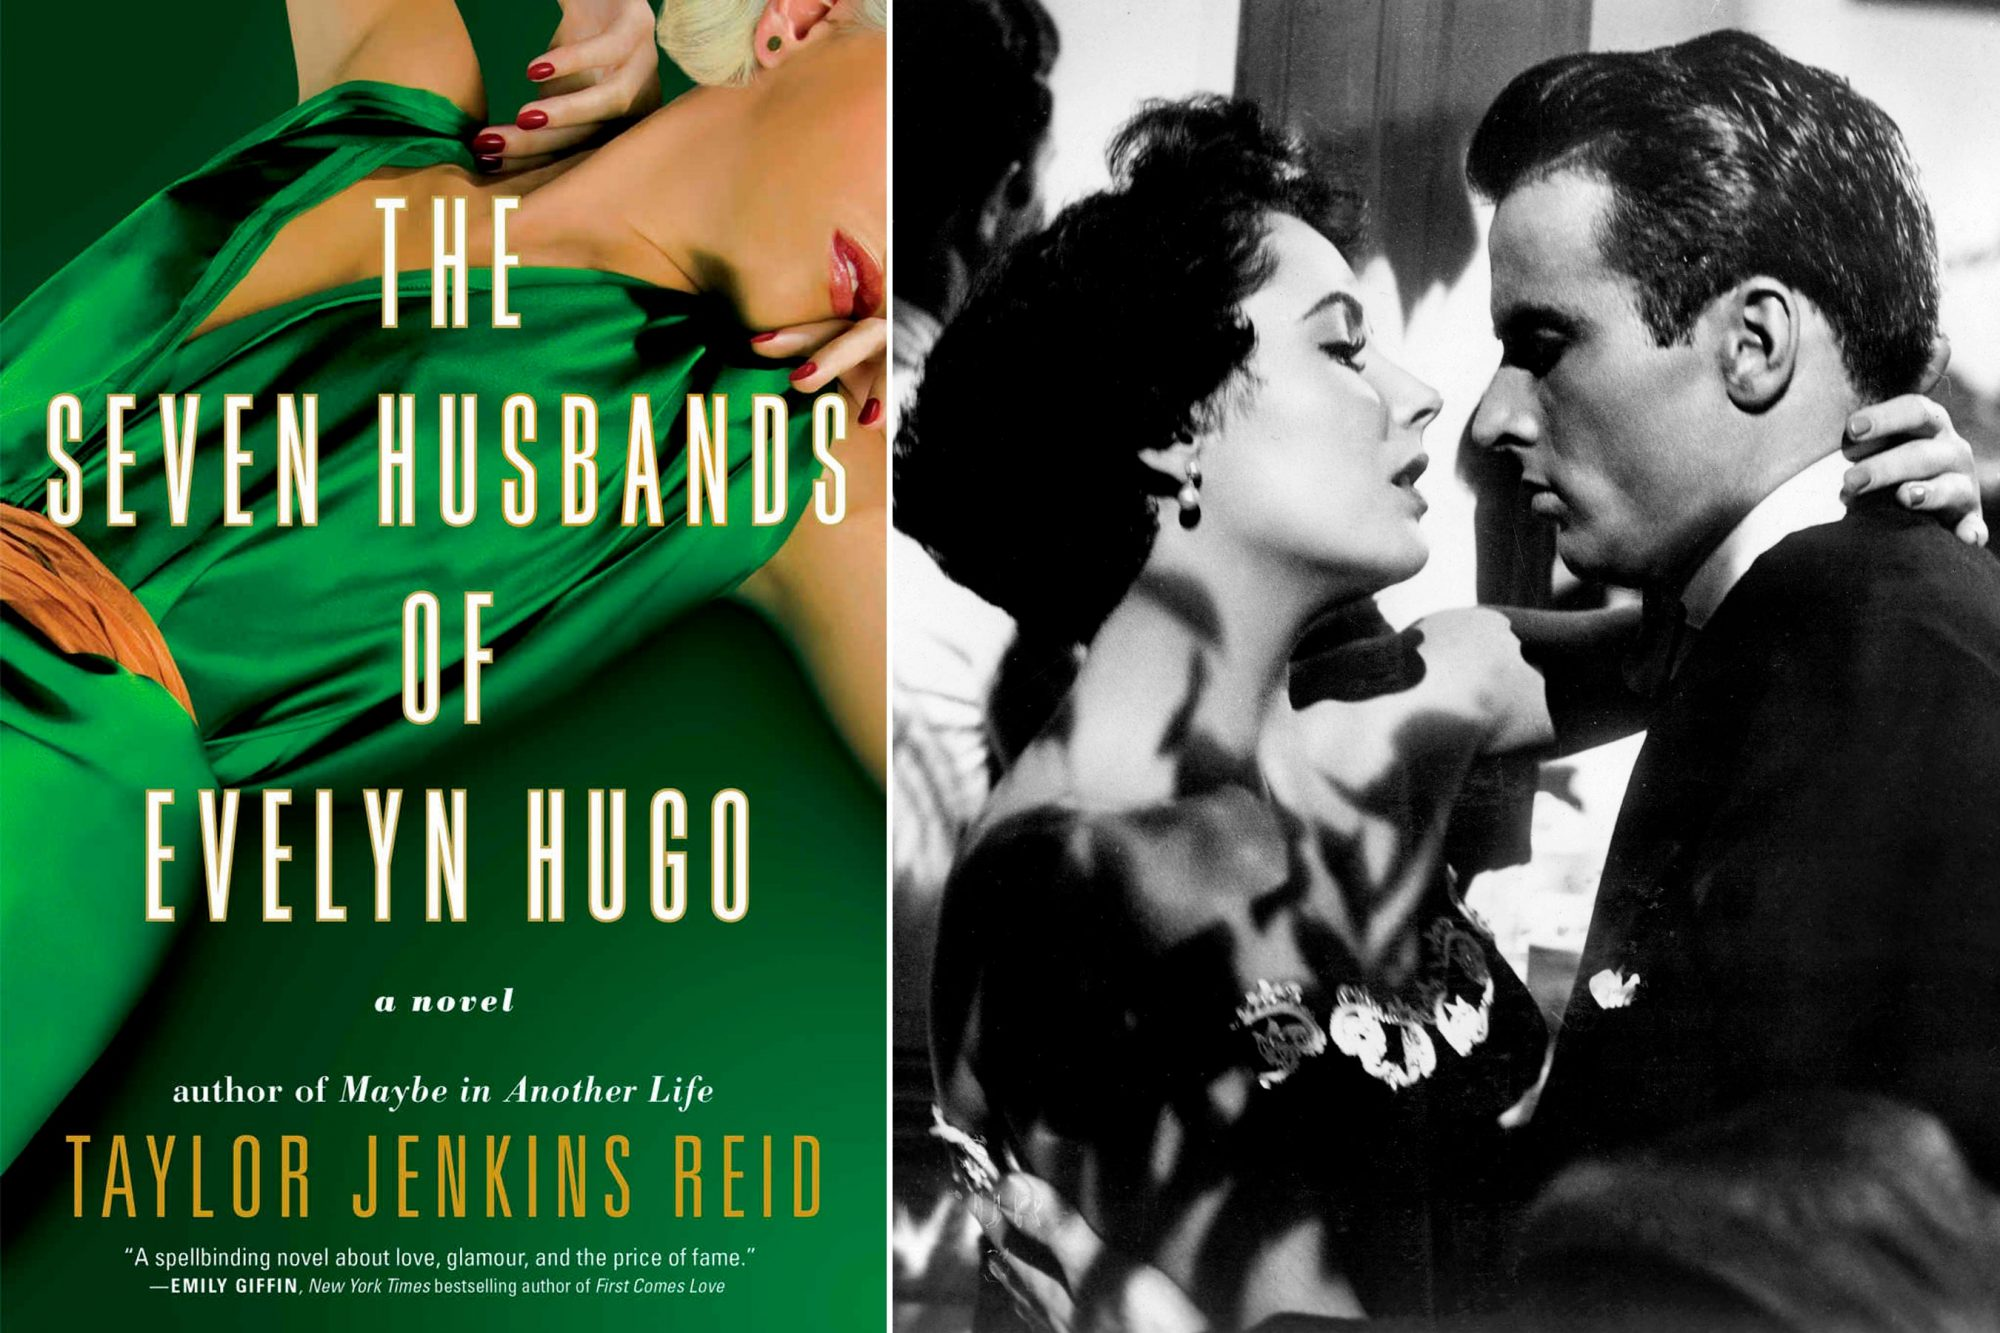 Read The Seven Husbands of Evelyn Hugo by Taylor Jenkins Reid; Watch A Place in the Sun (1951)